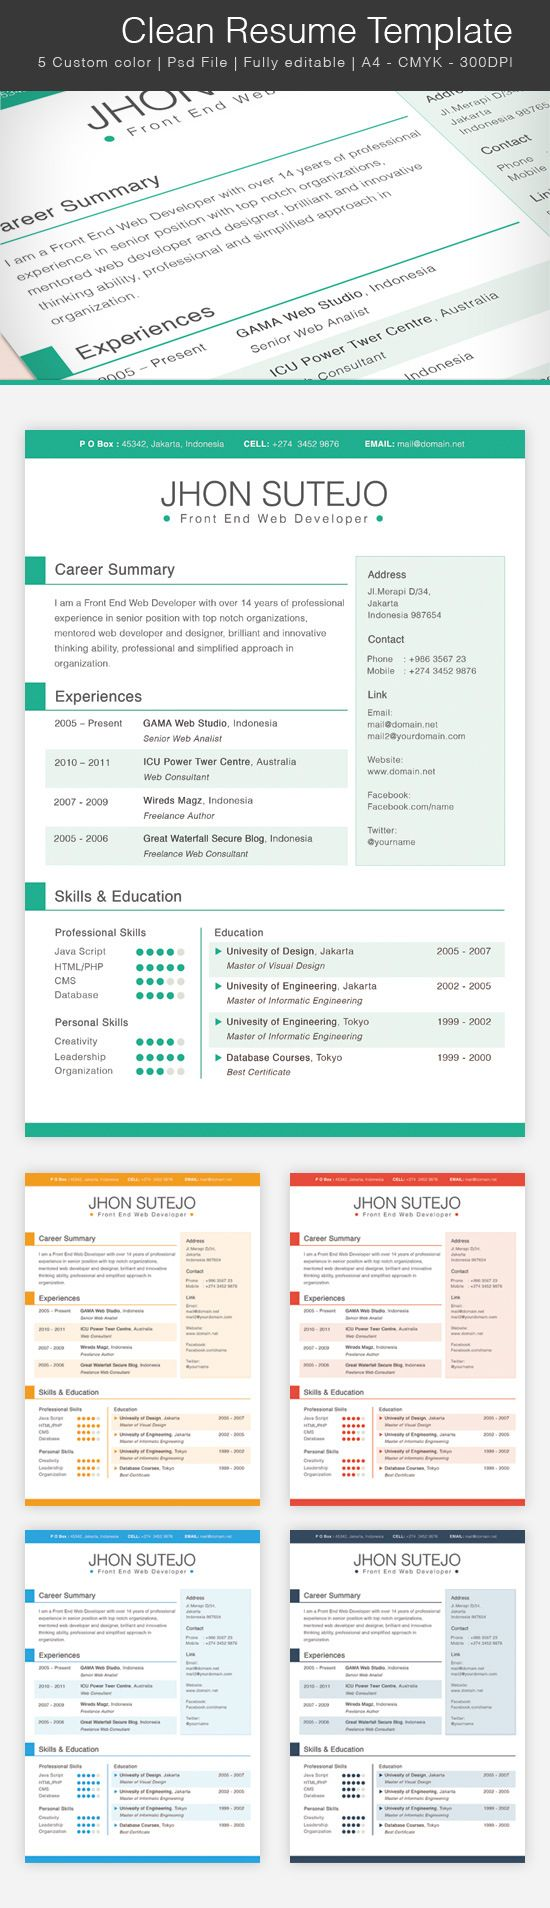 How To Write Your Skills On A Resume Creative And Professional #resumetemplates To Present Your Skills To .